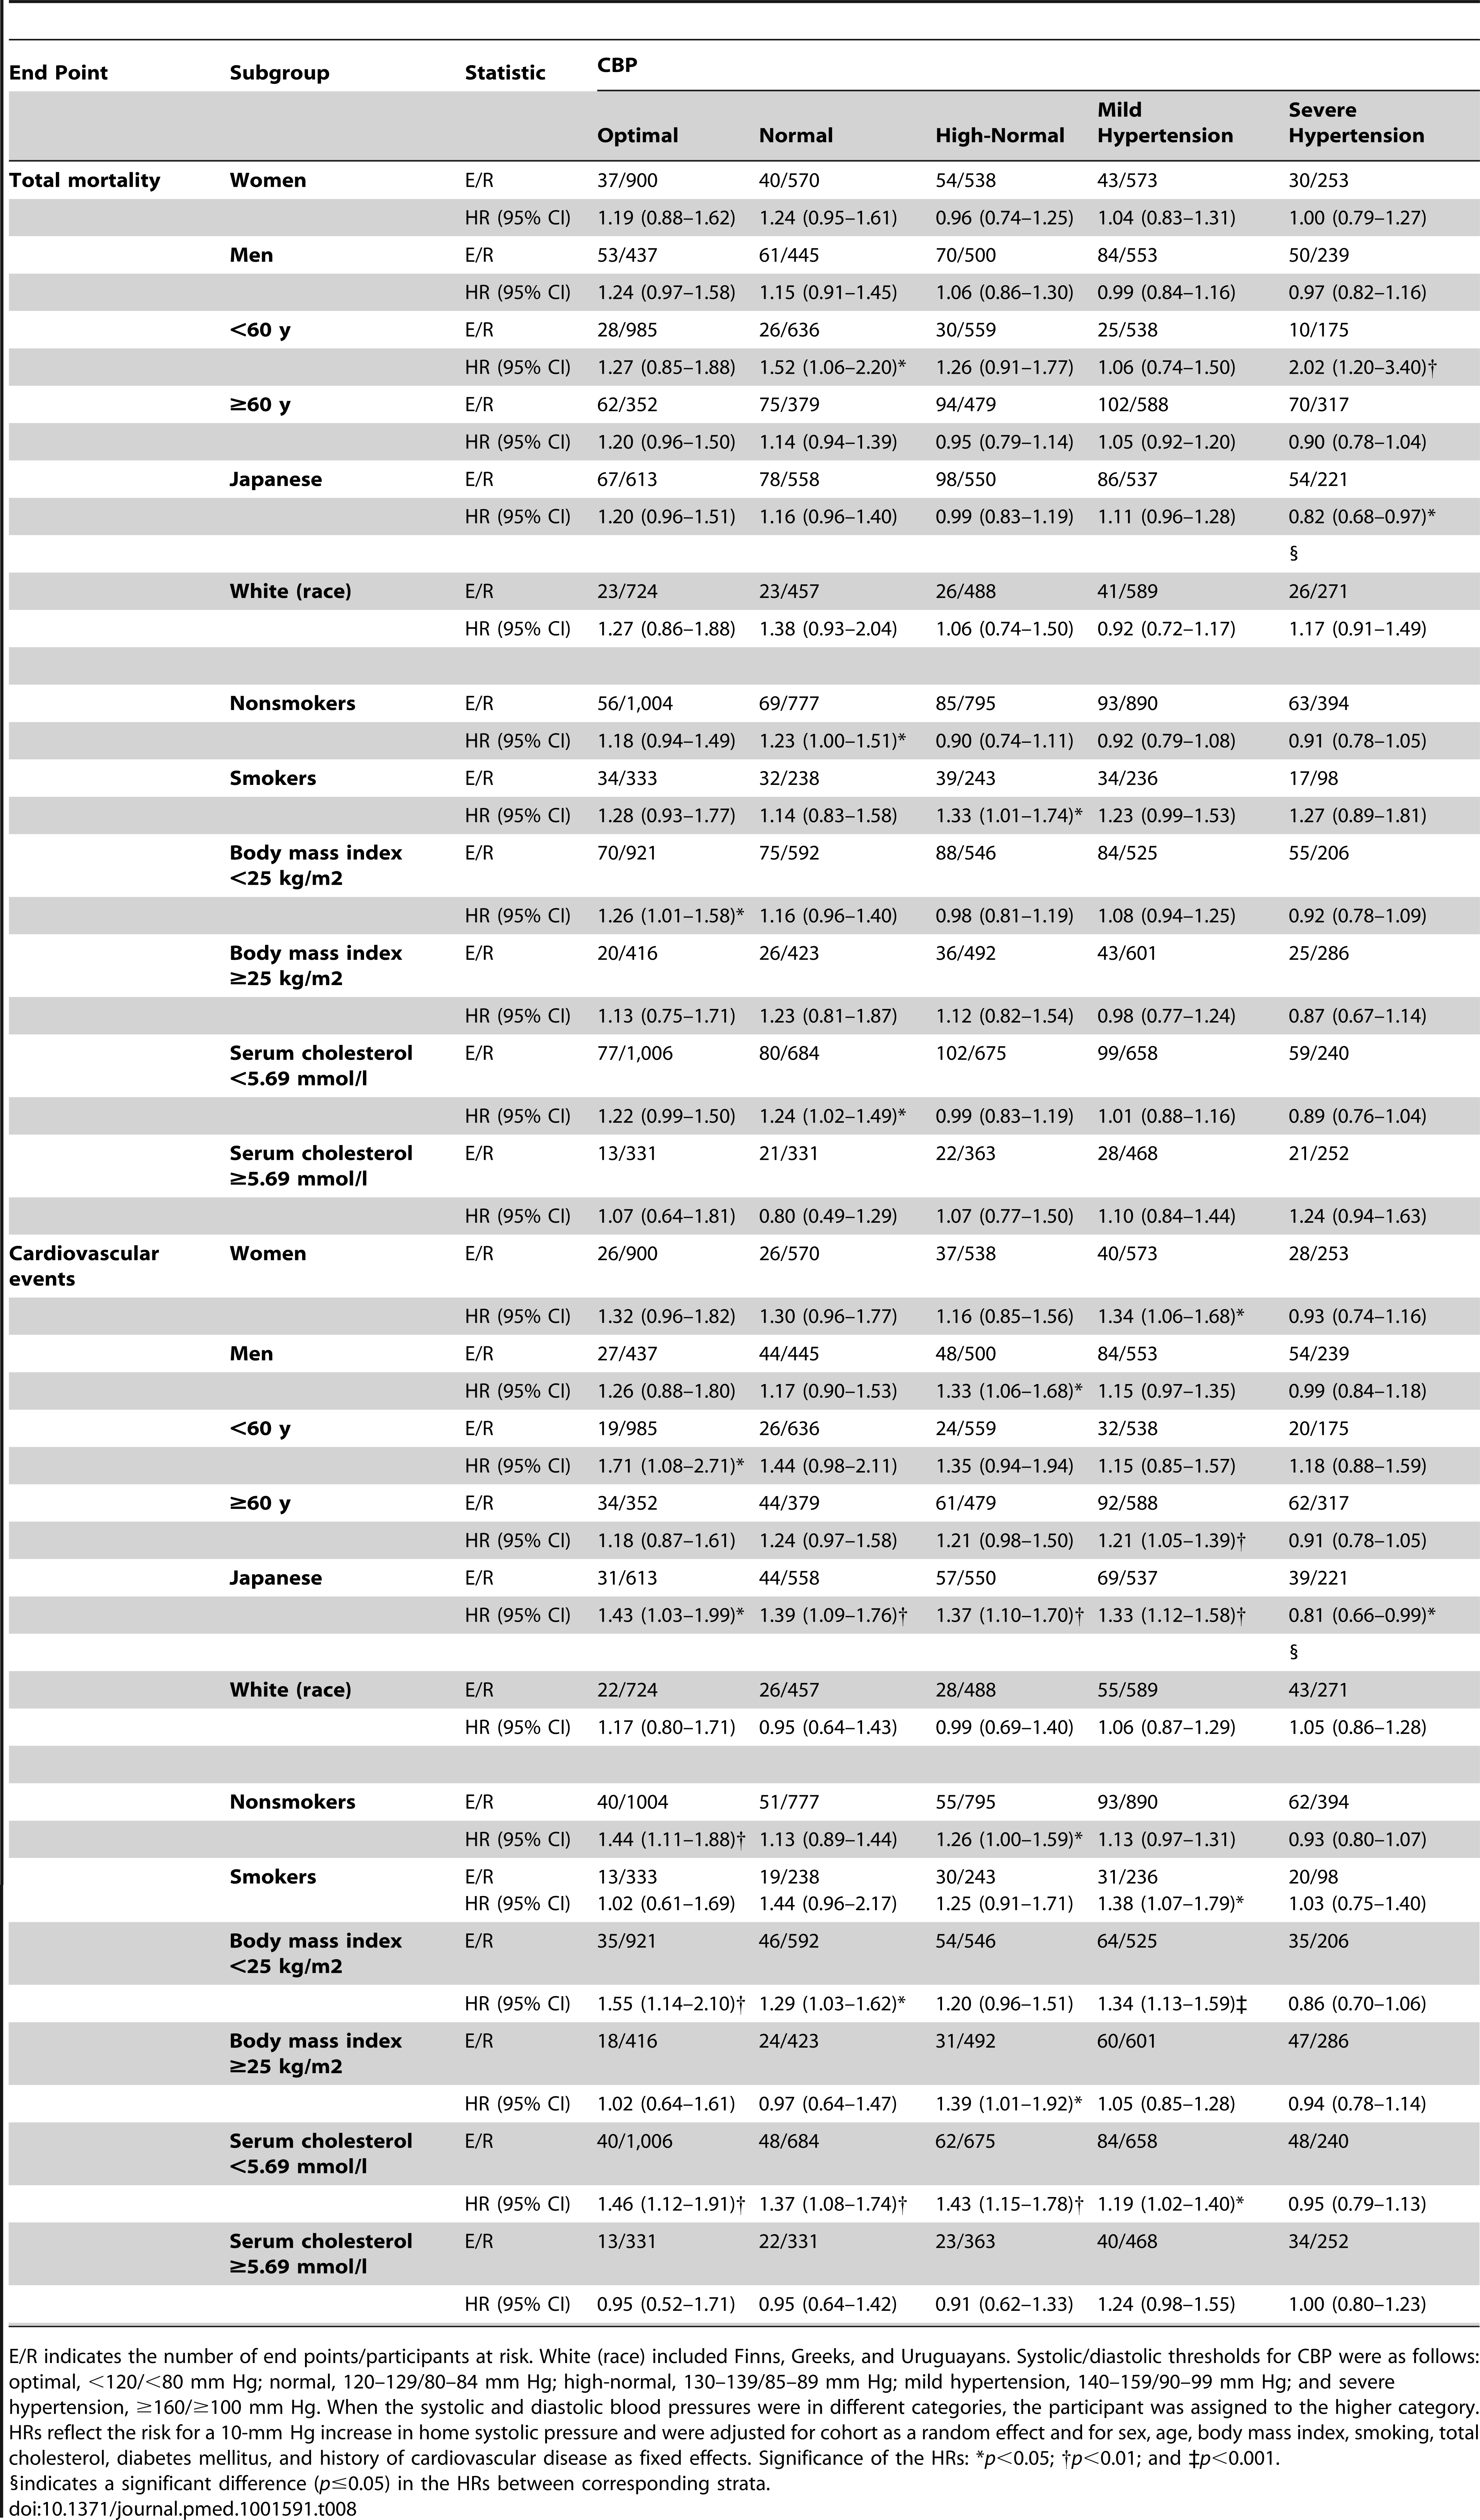 Sensitivity analysis for total mortality and cardiovascular events according to anthropometric characteristics and cardiovascular risk factors.